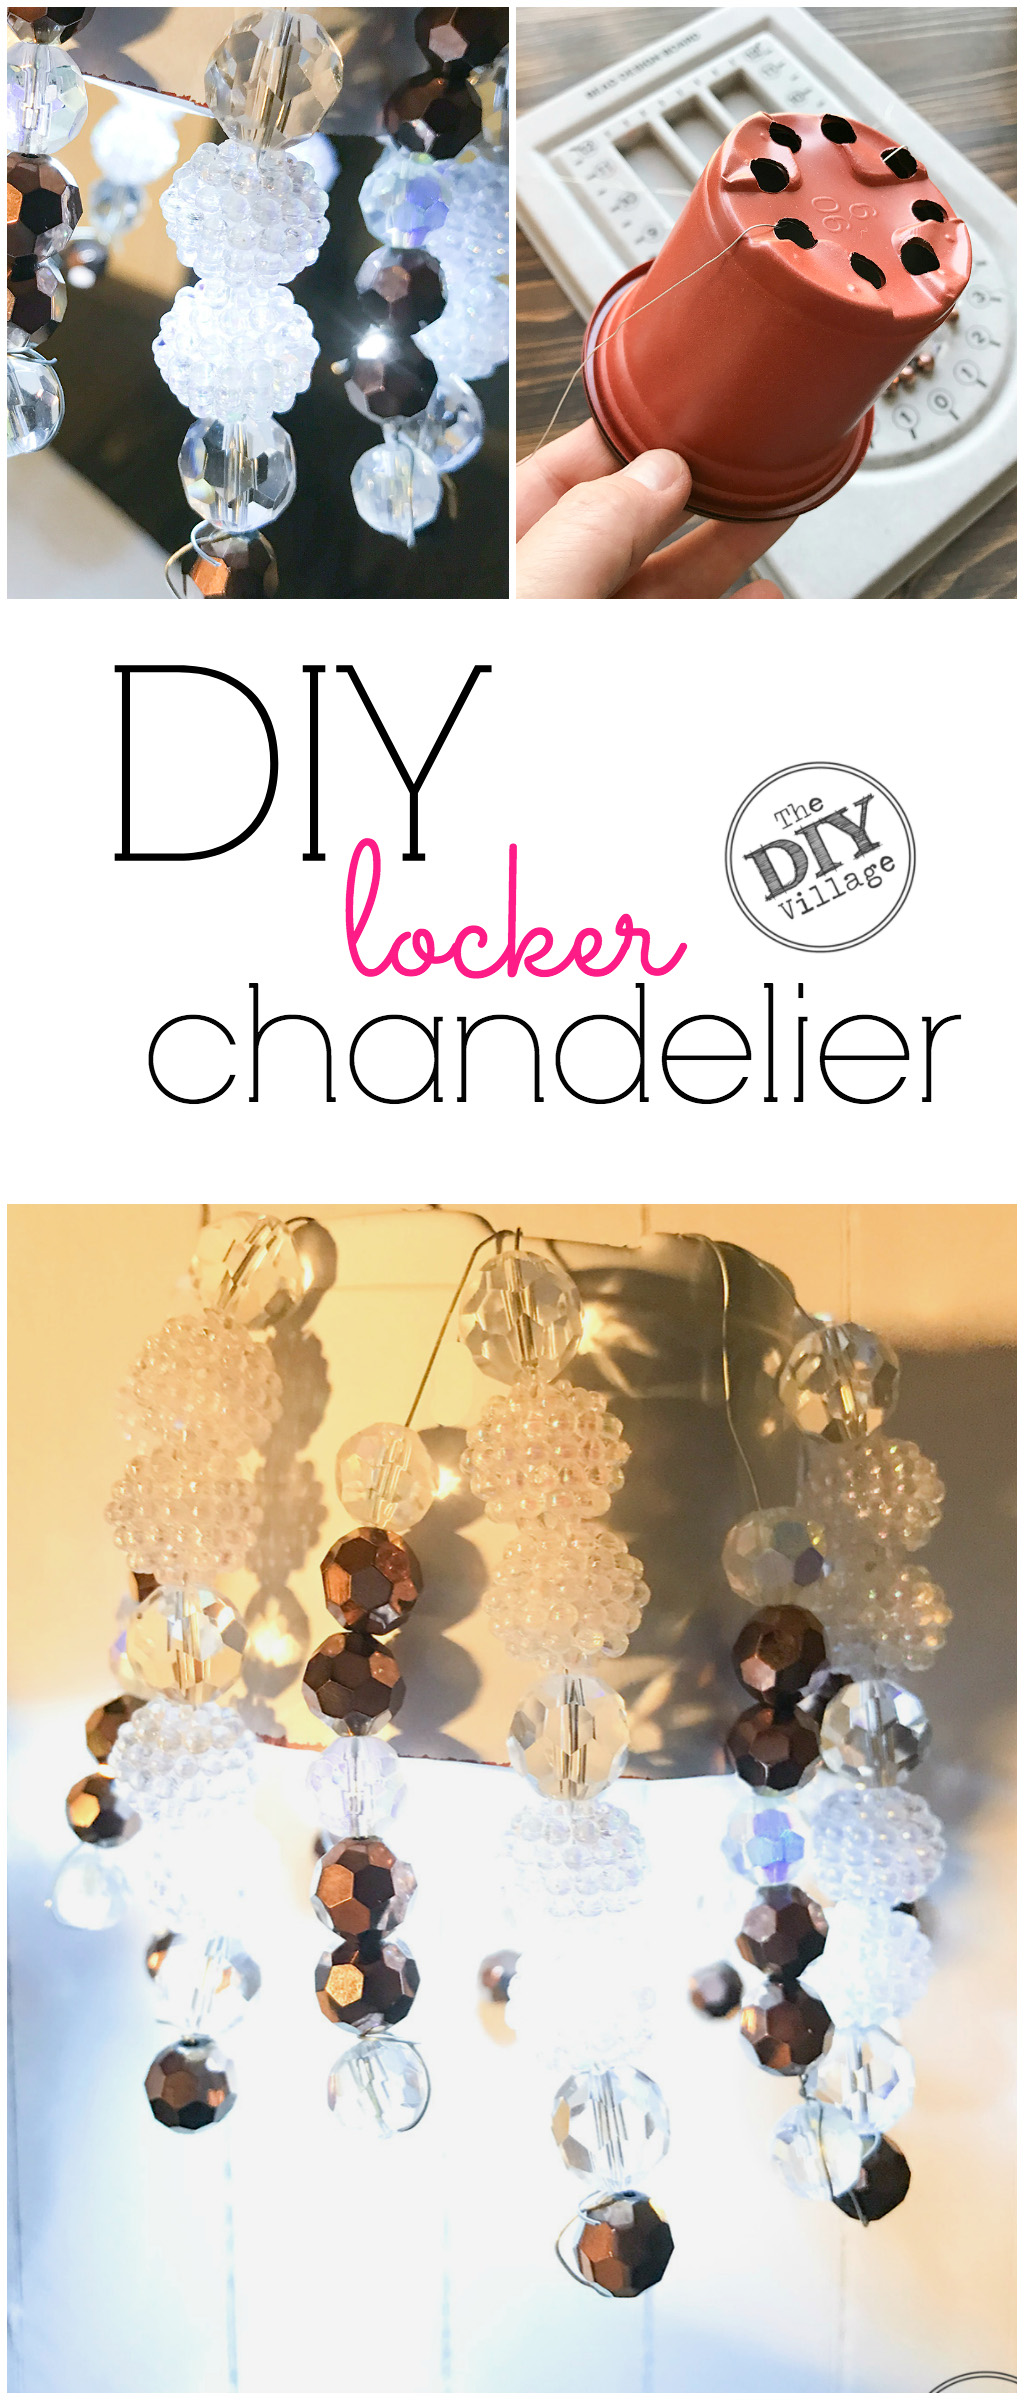 Diy Locker Chandelier For The Crafty Girl The Diy Village